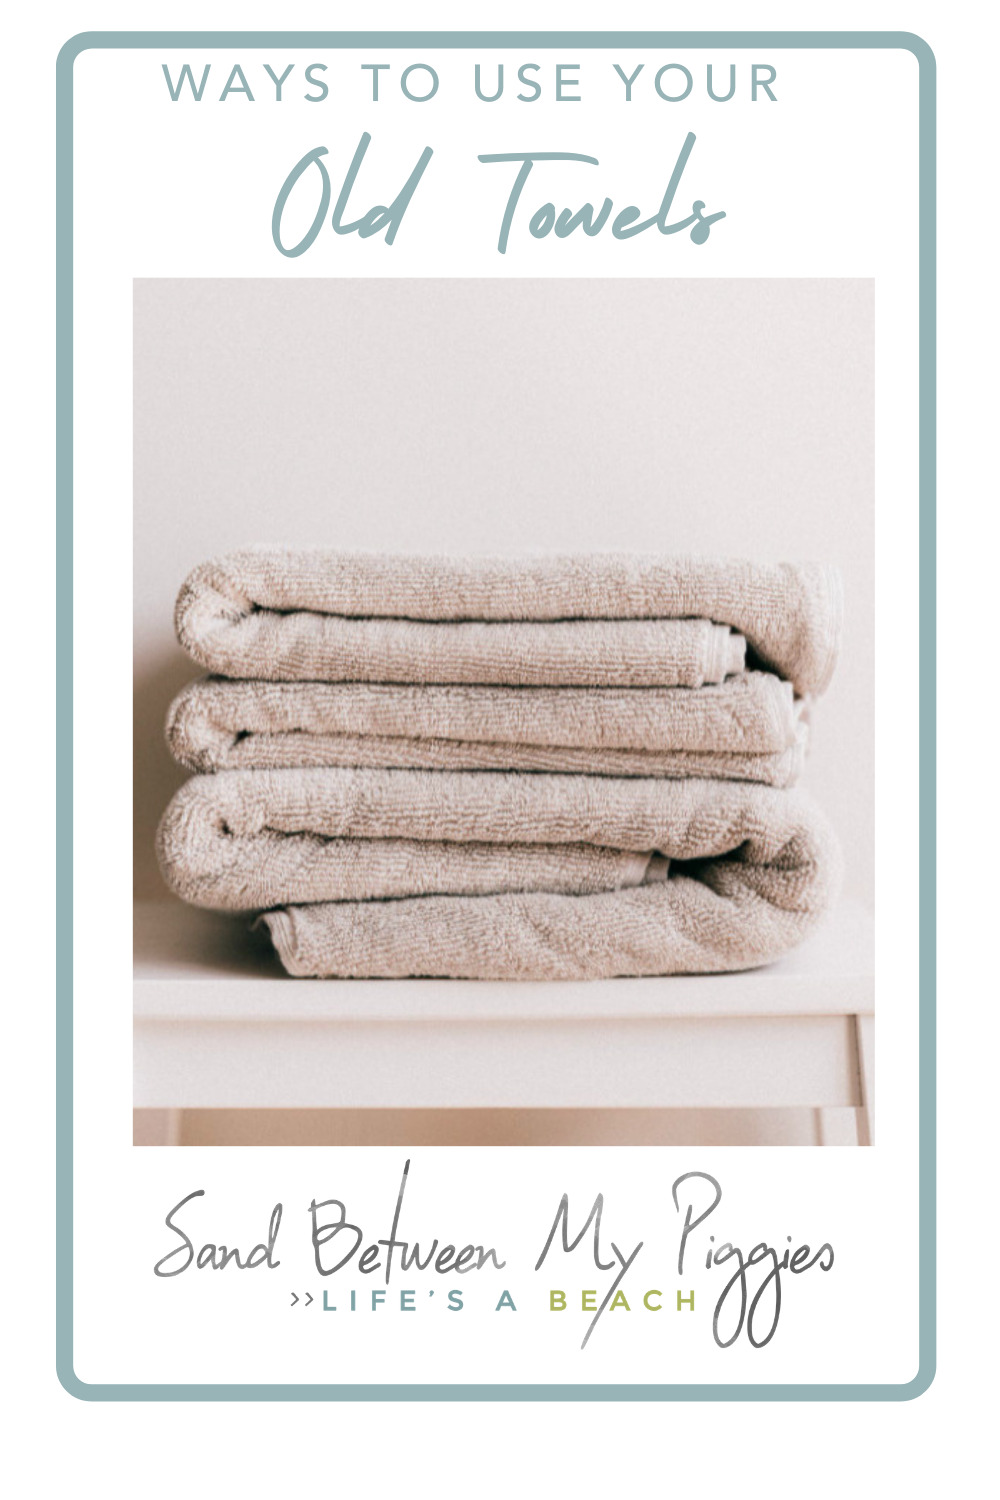 Sandbetweenmypiggies.com is the best place to find cozy, beachy DIY projects. Find creative ways to make things all on your own. Try out these clever ideas for old towels!